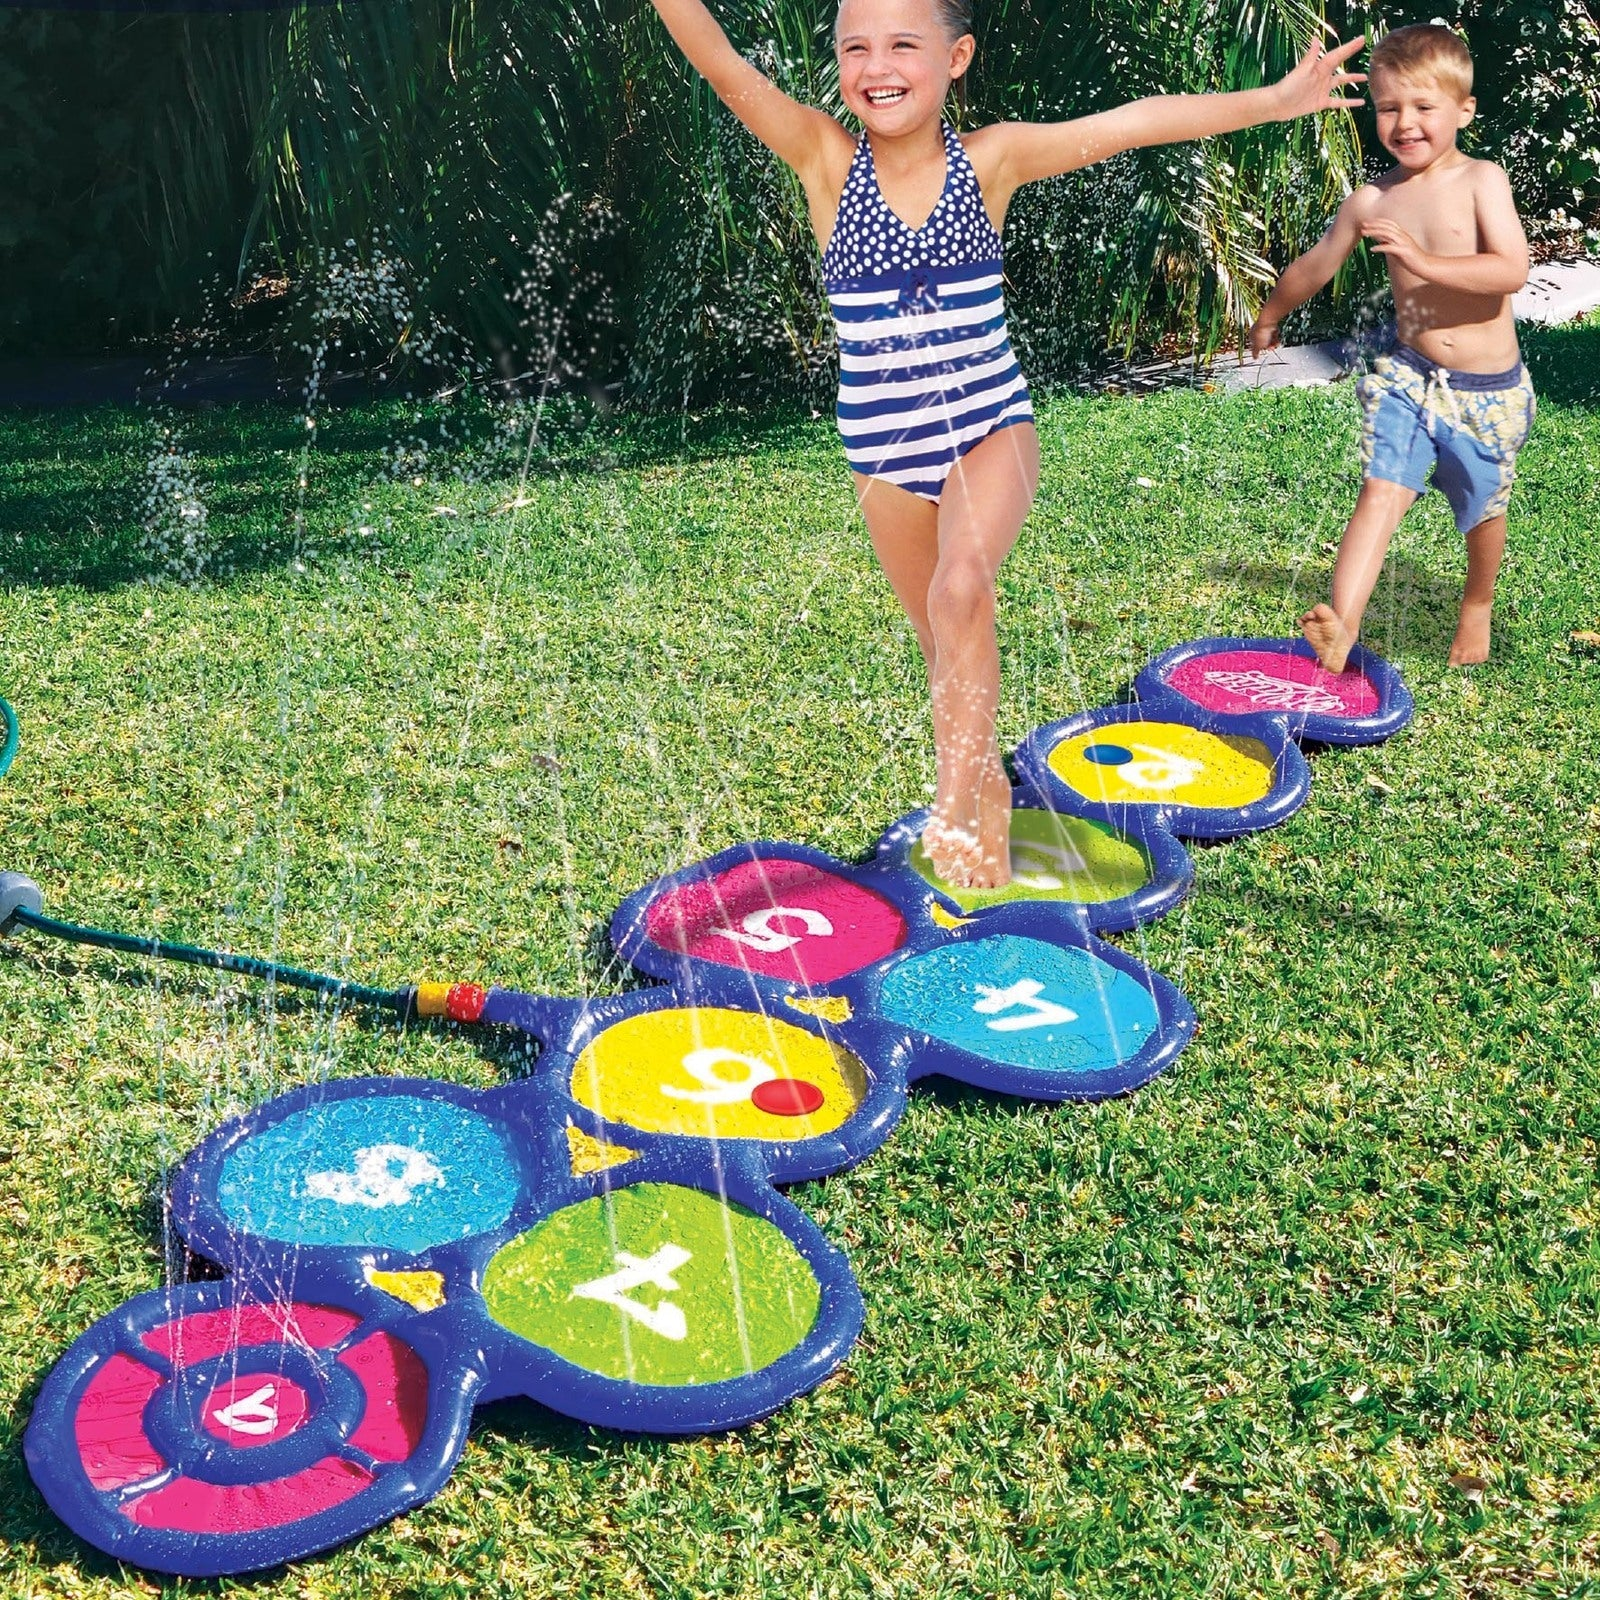 Wahu: Hop Skip'n Splash - Sprinkler Set